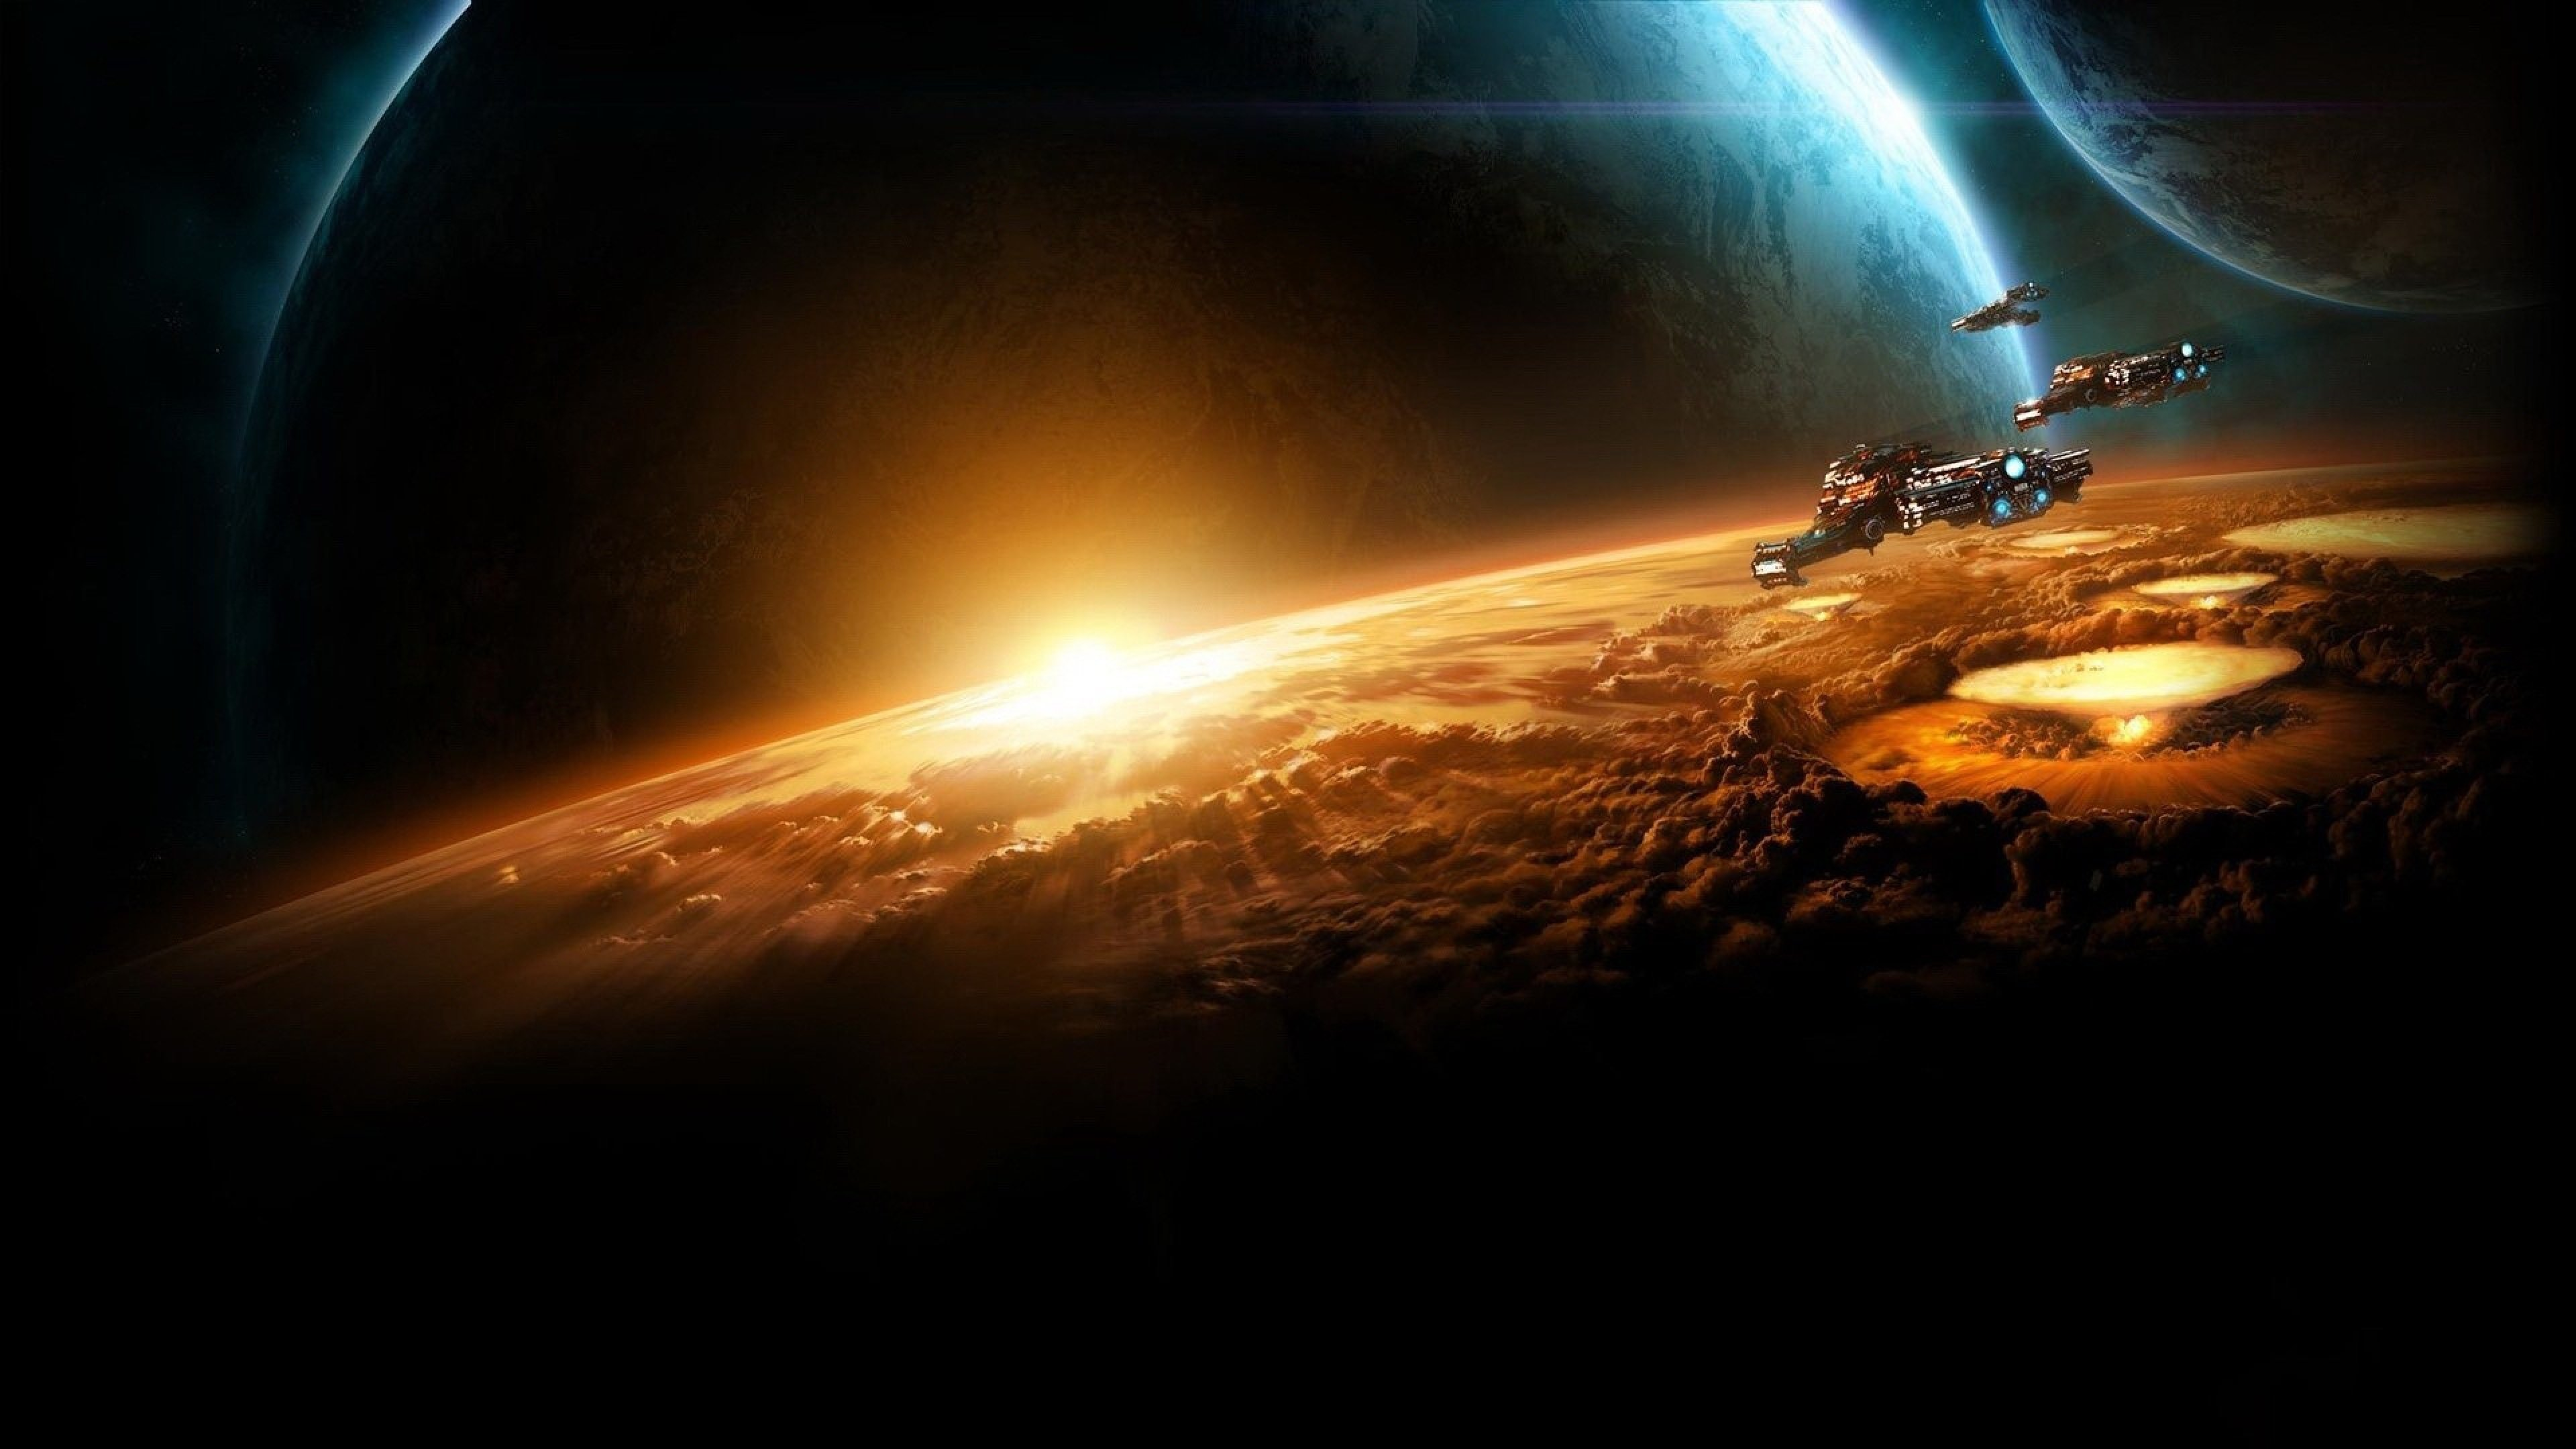 Starcraft Planet Sun Earth Space Wallpaper